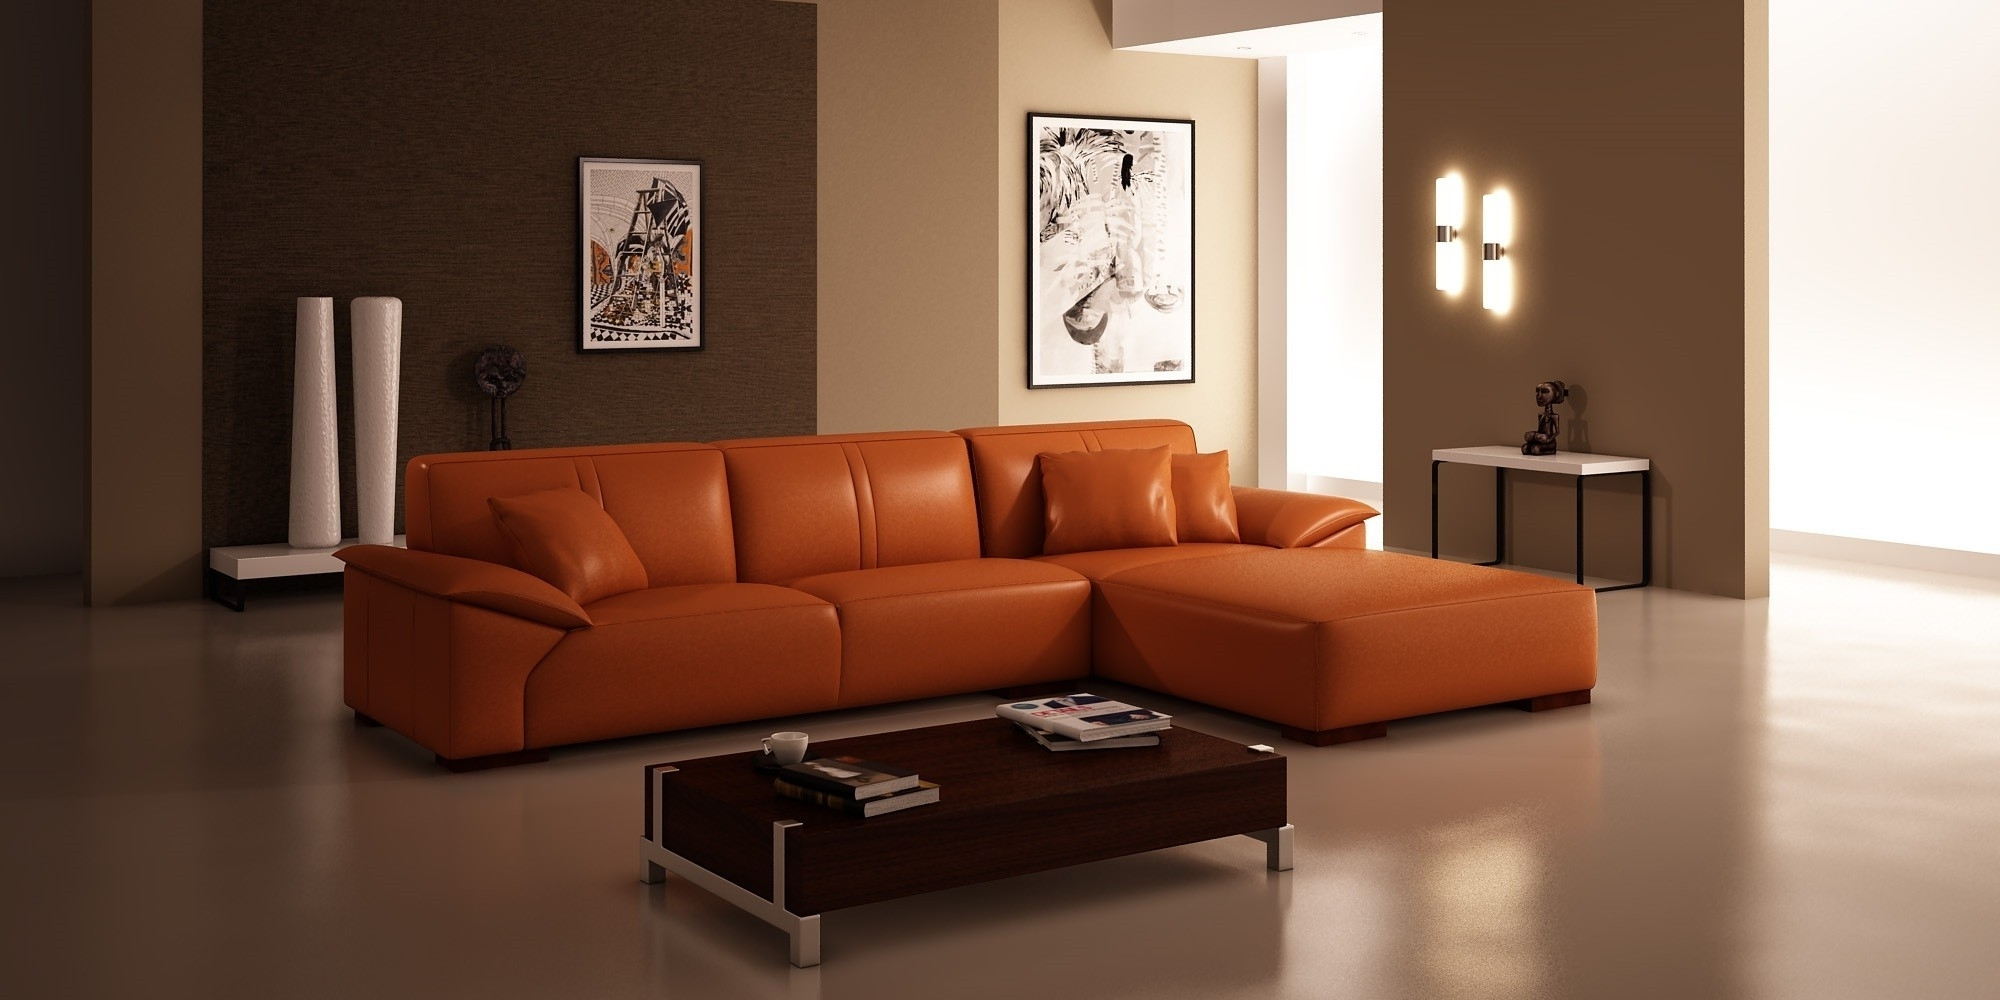 Furniture: Comfy Design Of Oversized Couch For Charming Living Pertaining To Most Current Overstuffed Sofas And Chairs (View 19 of 20)